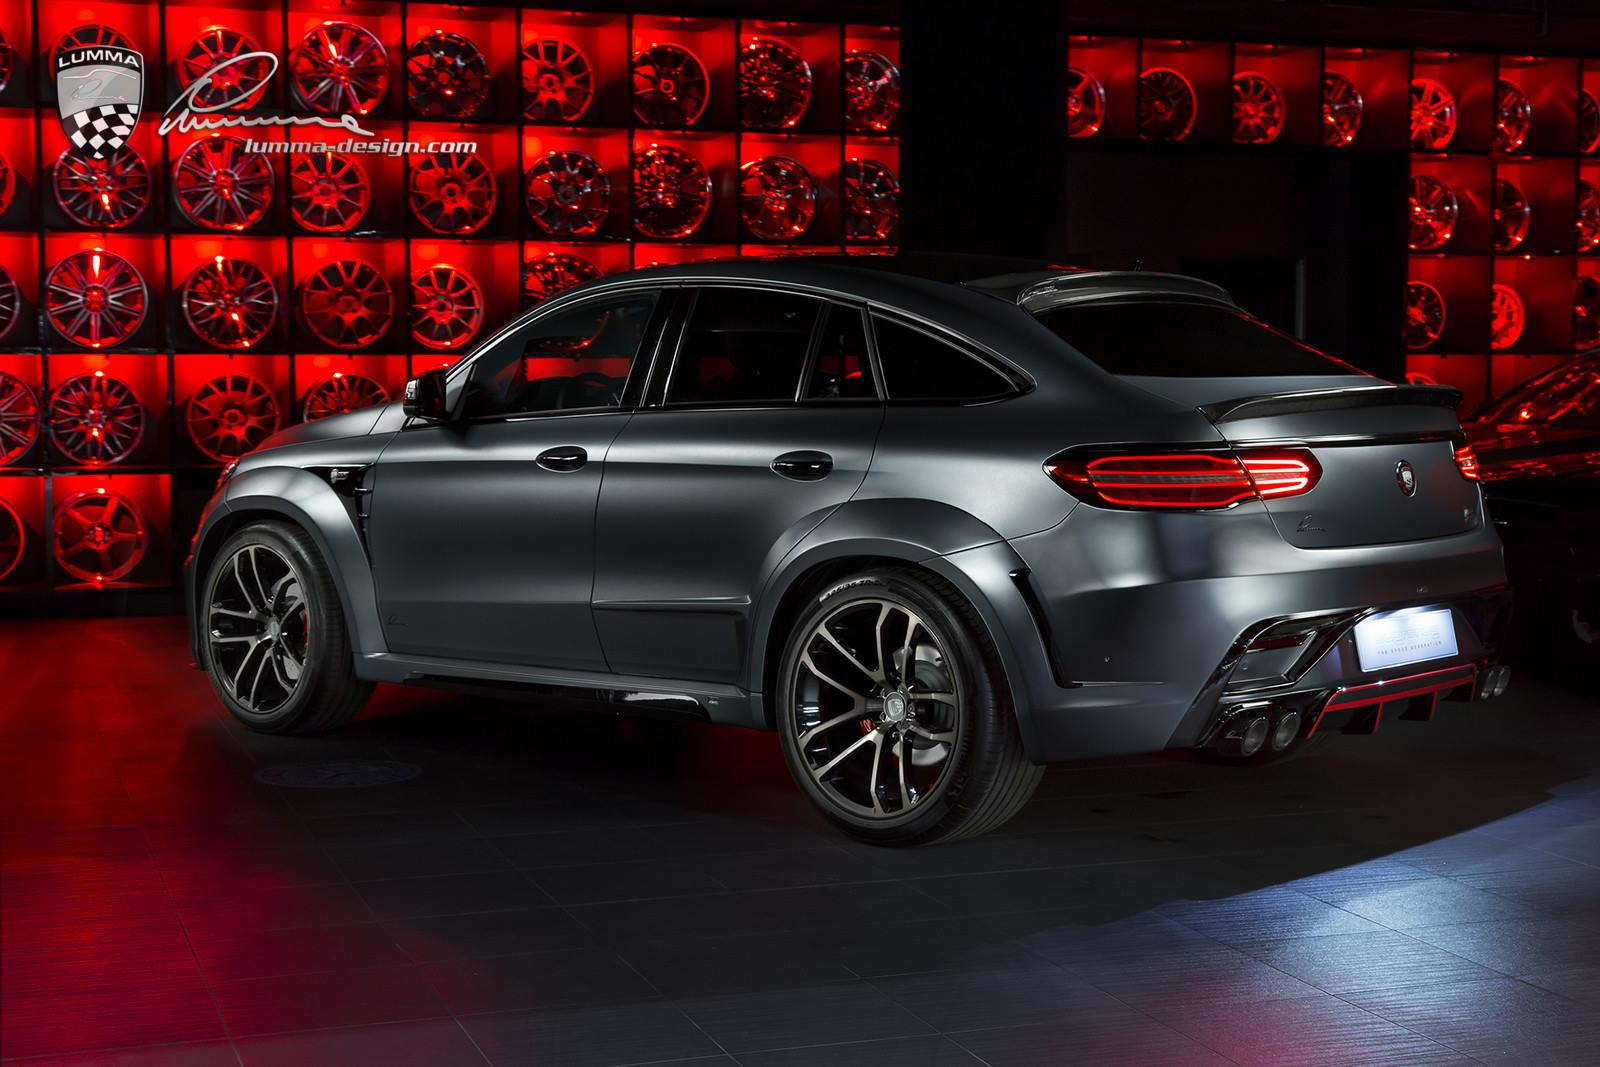 Mercedes-Benz GLE Coupe by Lumma Design (2)